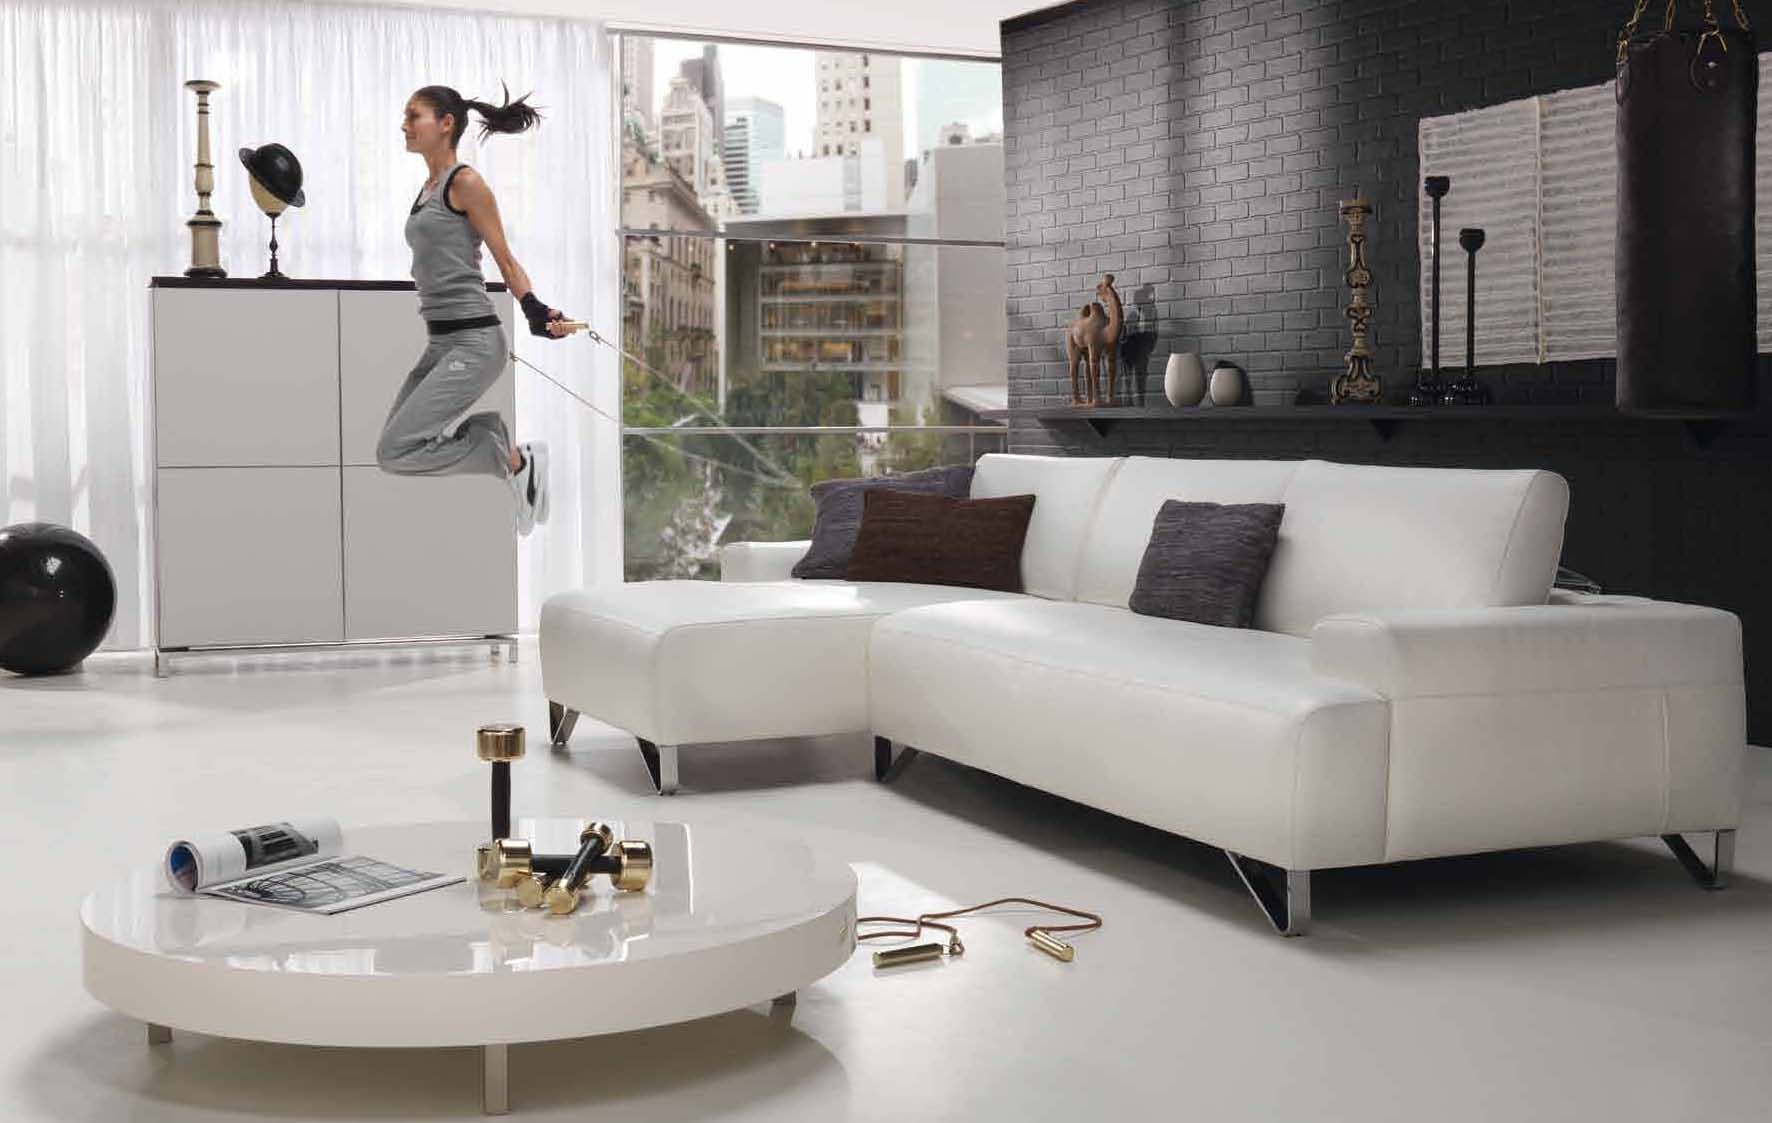 white leather sofa living room ideas. 15 Awesome White Living Room Furniture For Your Space Black Leather Sofa Sets Inspiring Ideas for  hgnv